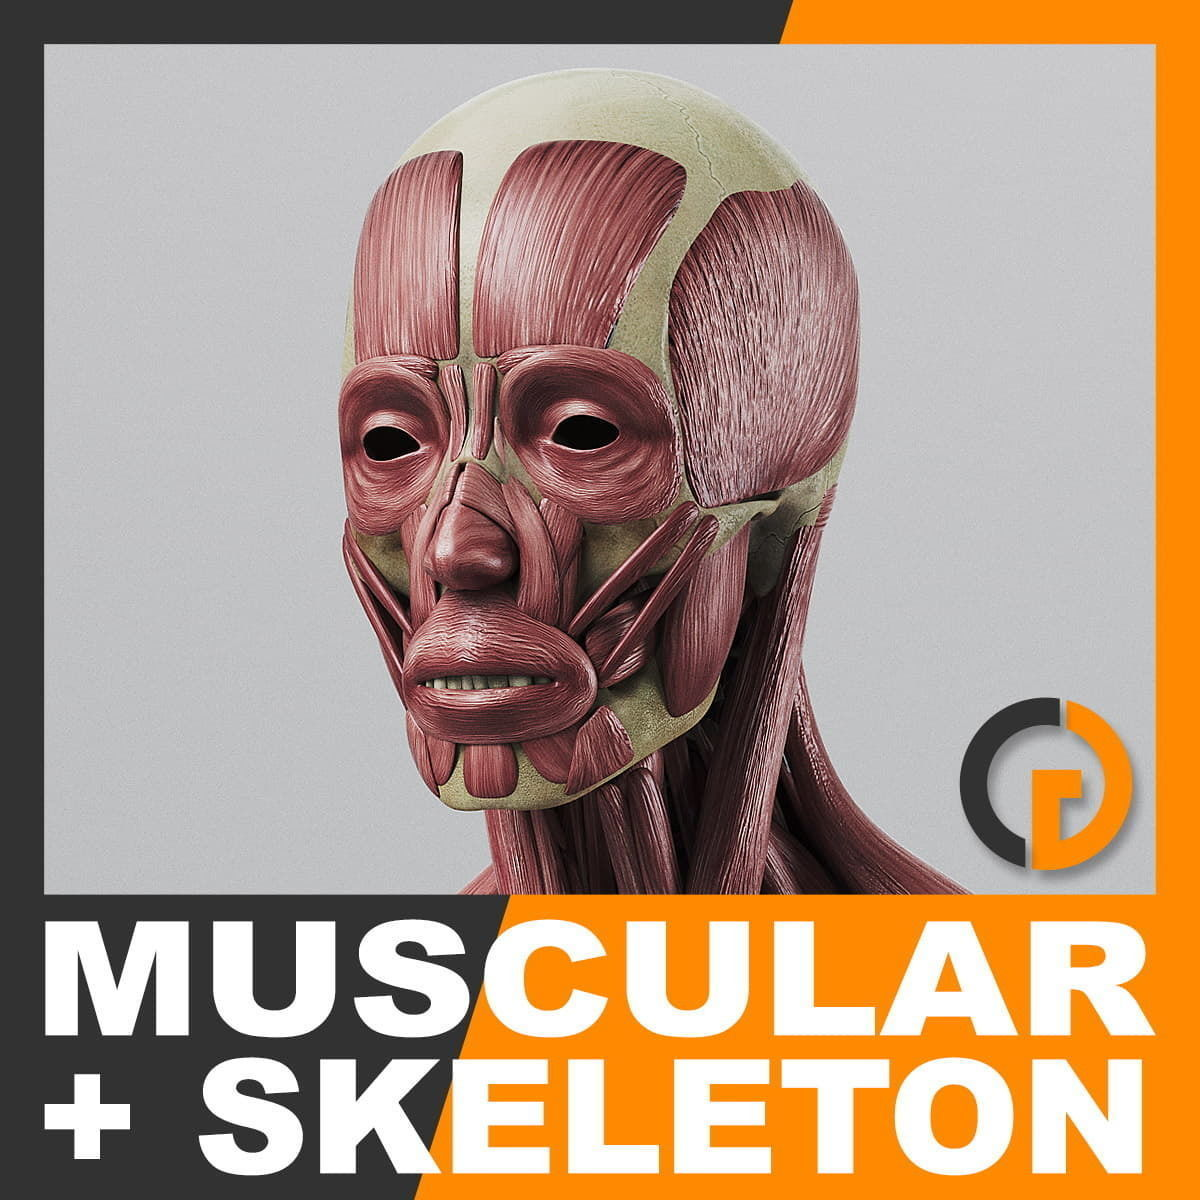 Human Muscular System and Skeleton - Anatomy